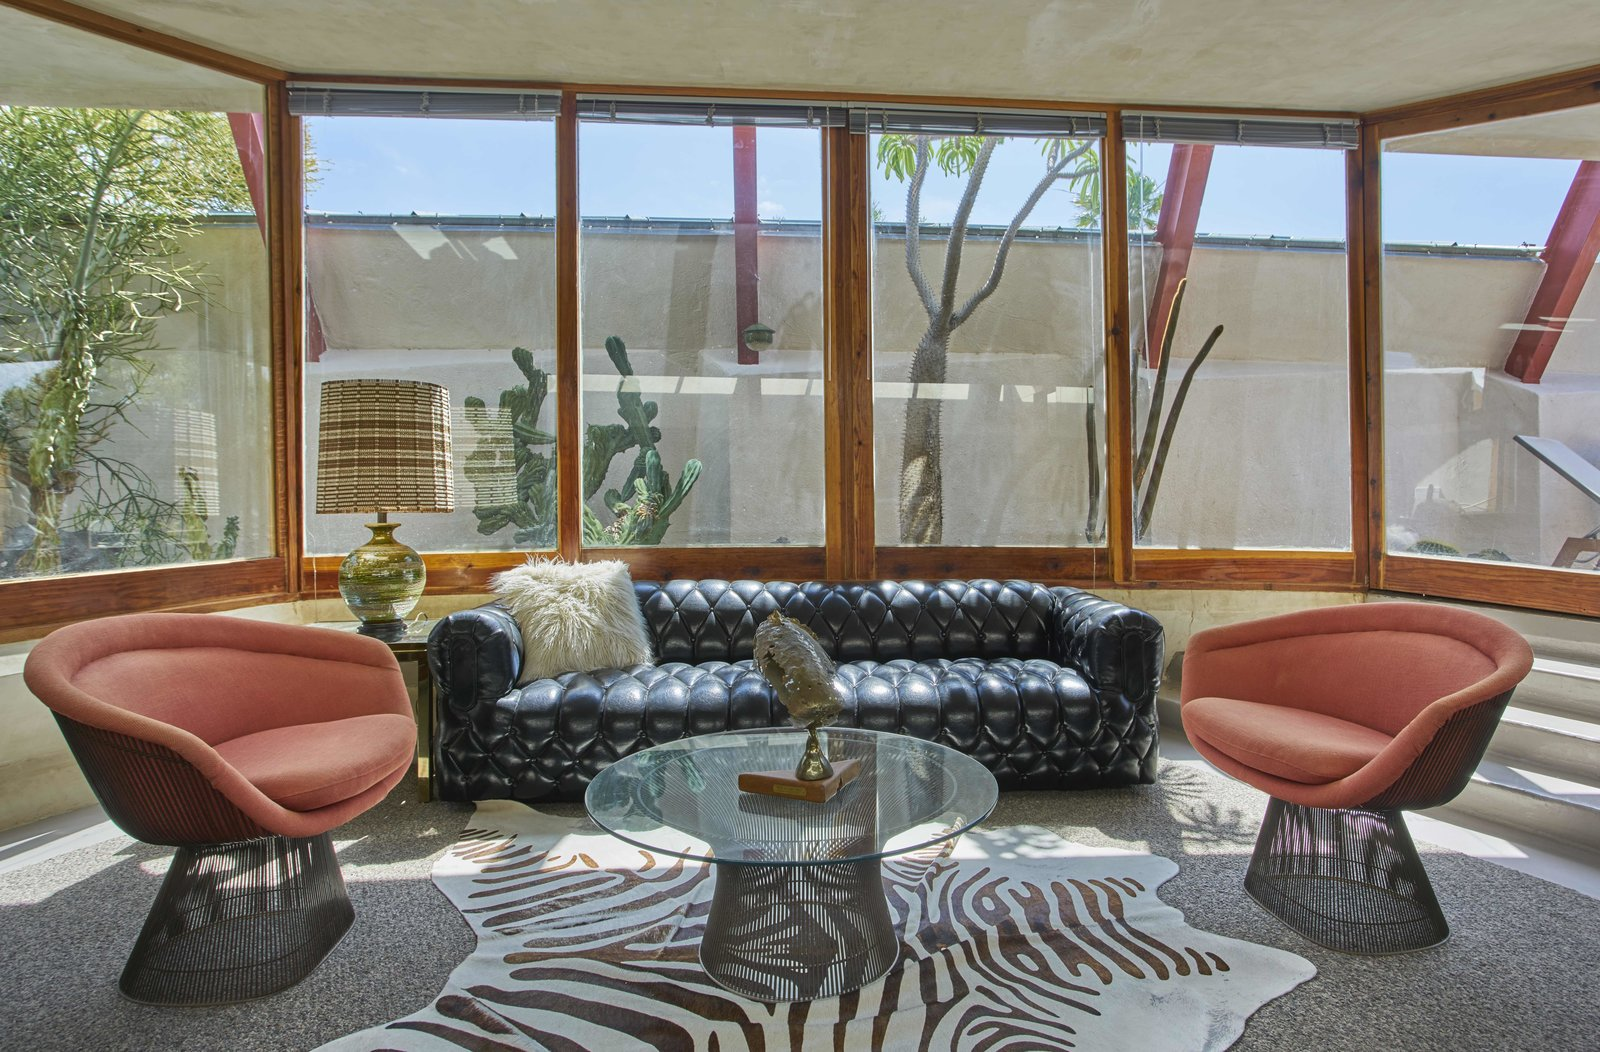 Tagged: Living Room, Sofa, Lamps, Chair, Coffee Tables, End Tables, Rug Floor, Carpet Floor, Concrete Floor, and Table Lighting.  Photo 12 of 13 in Escape to a John Lautner Micro-Resort in the Californian Desert